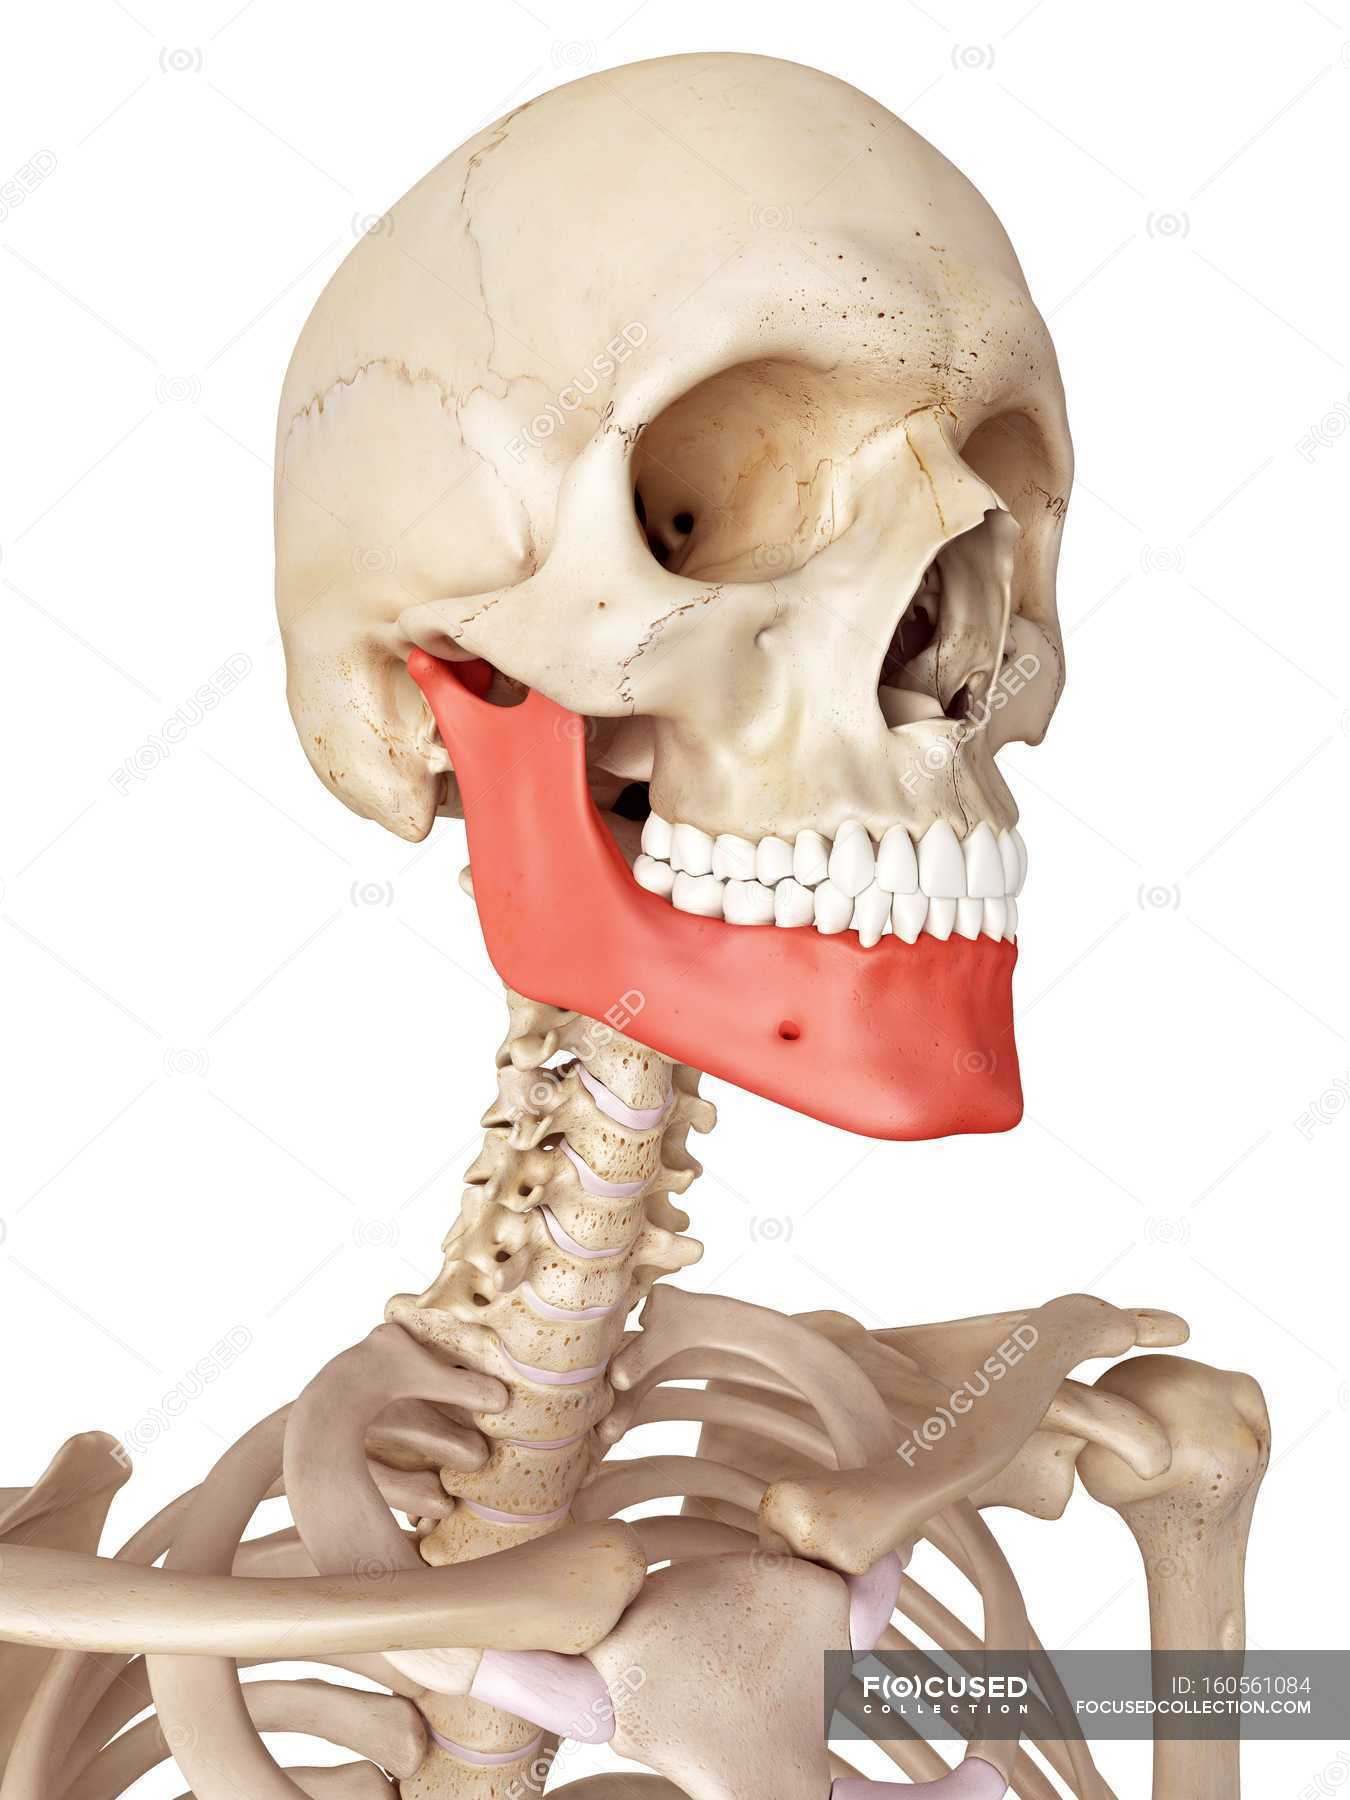 Human jaw bone anatomy — Stock Photo | #160561084